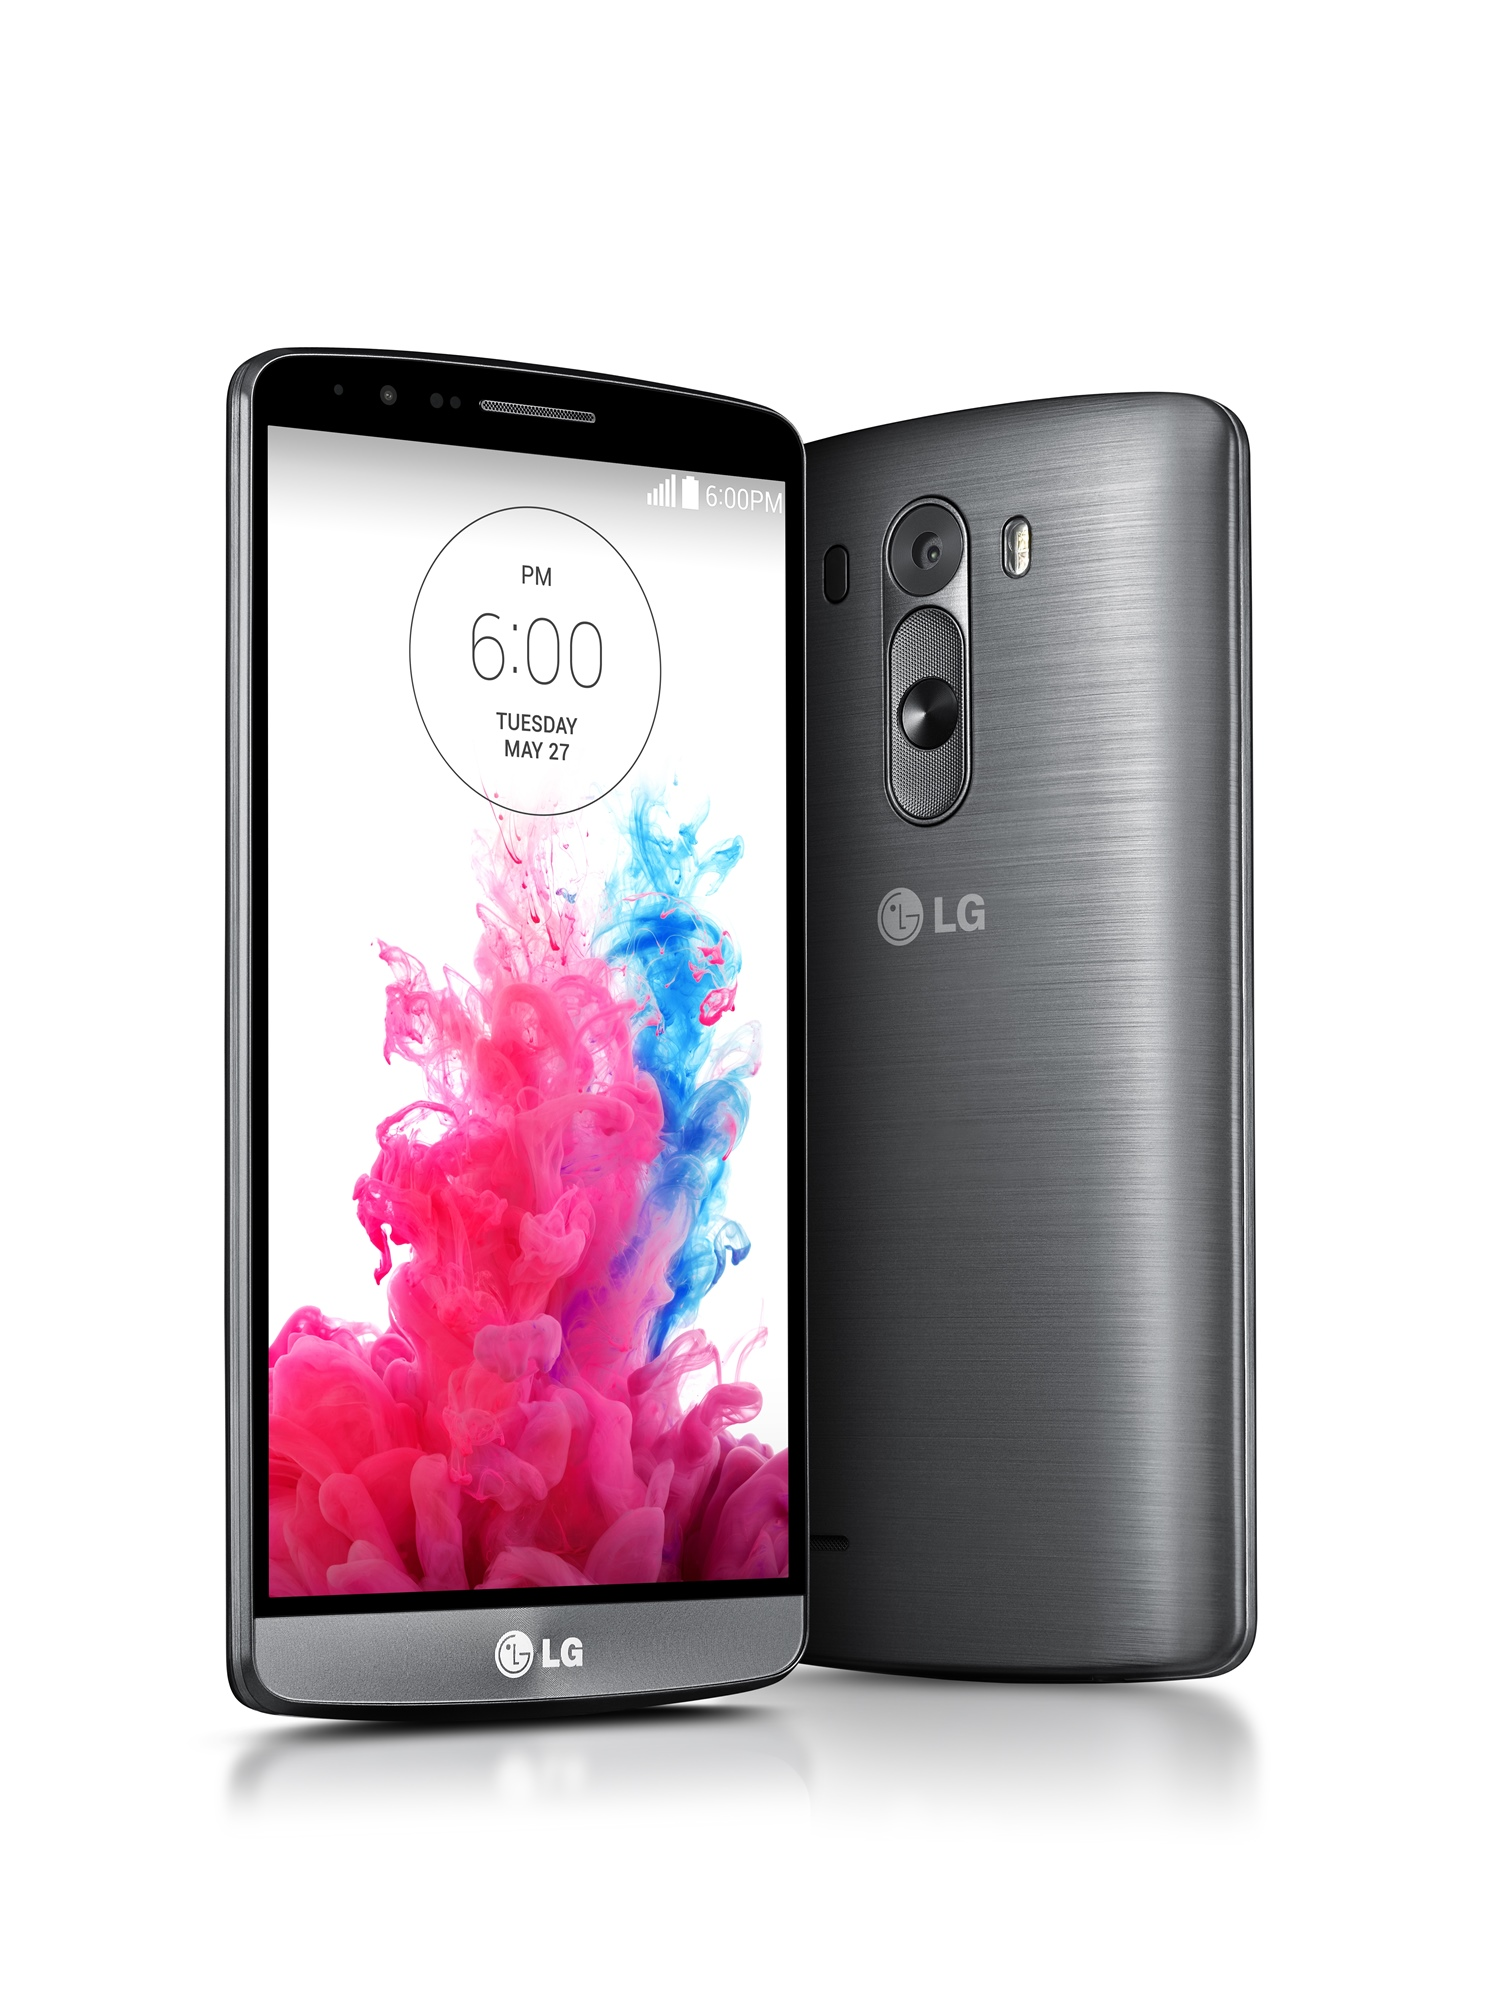 A front view and a back view of LG G3.